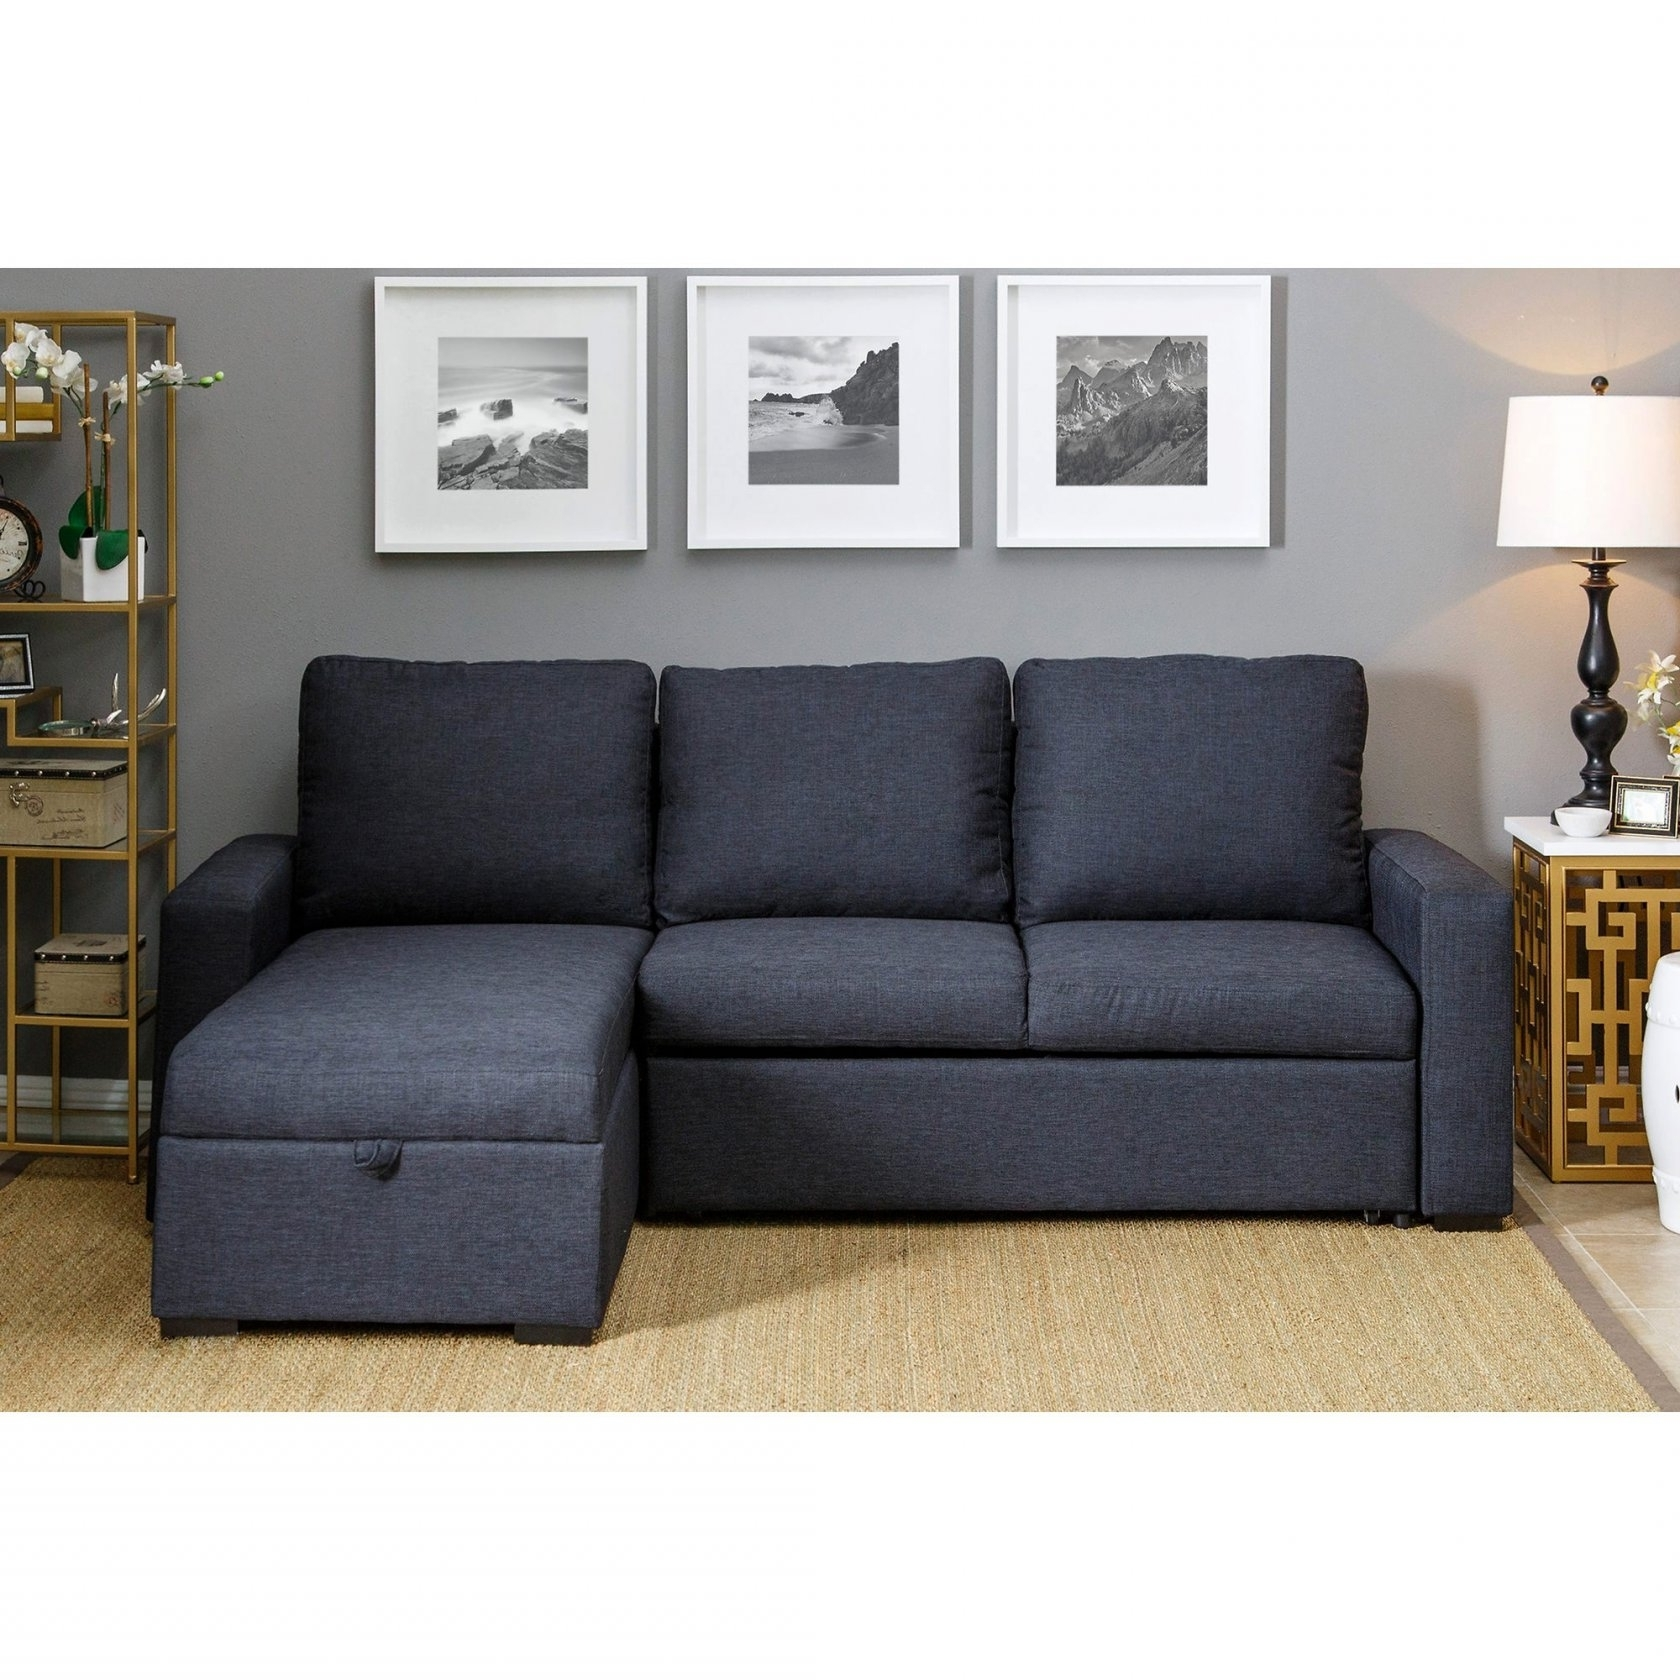 Favorite Abbyson Living Sectional Sofa #5 Excellent Abbyson Living Regarding Charlotte Sectional Sofas (View 7 of 15)